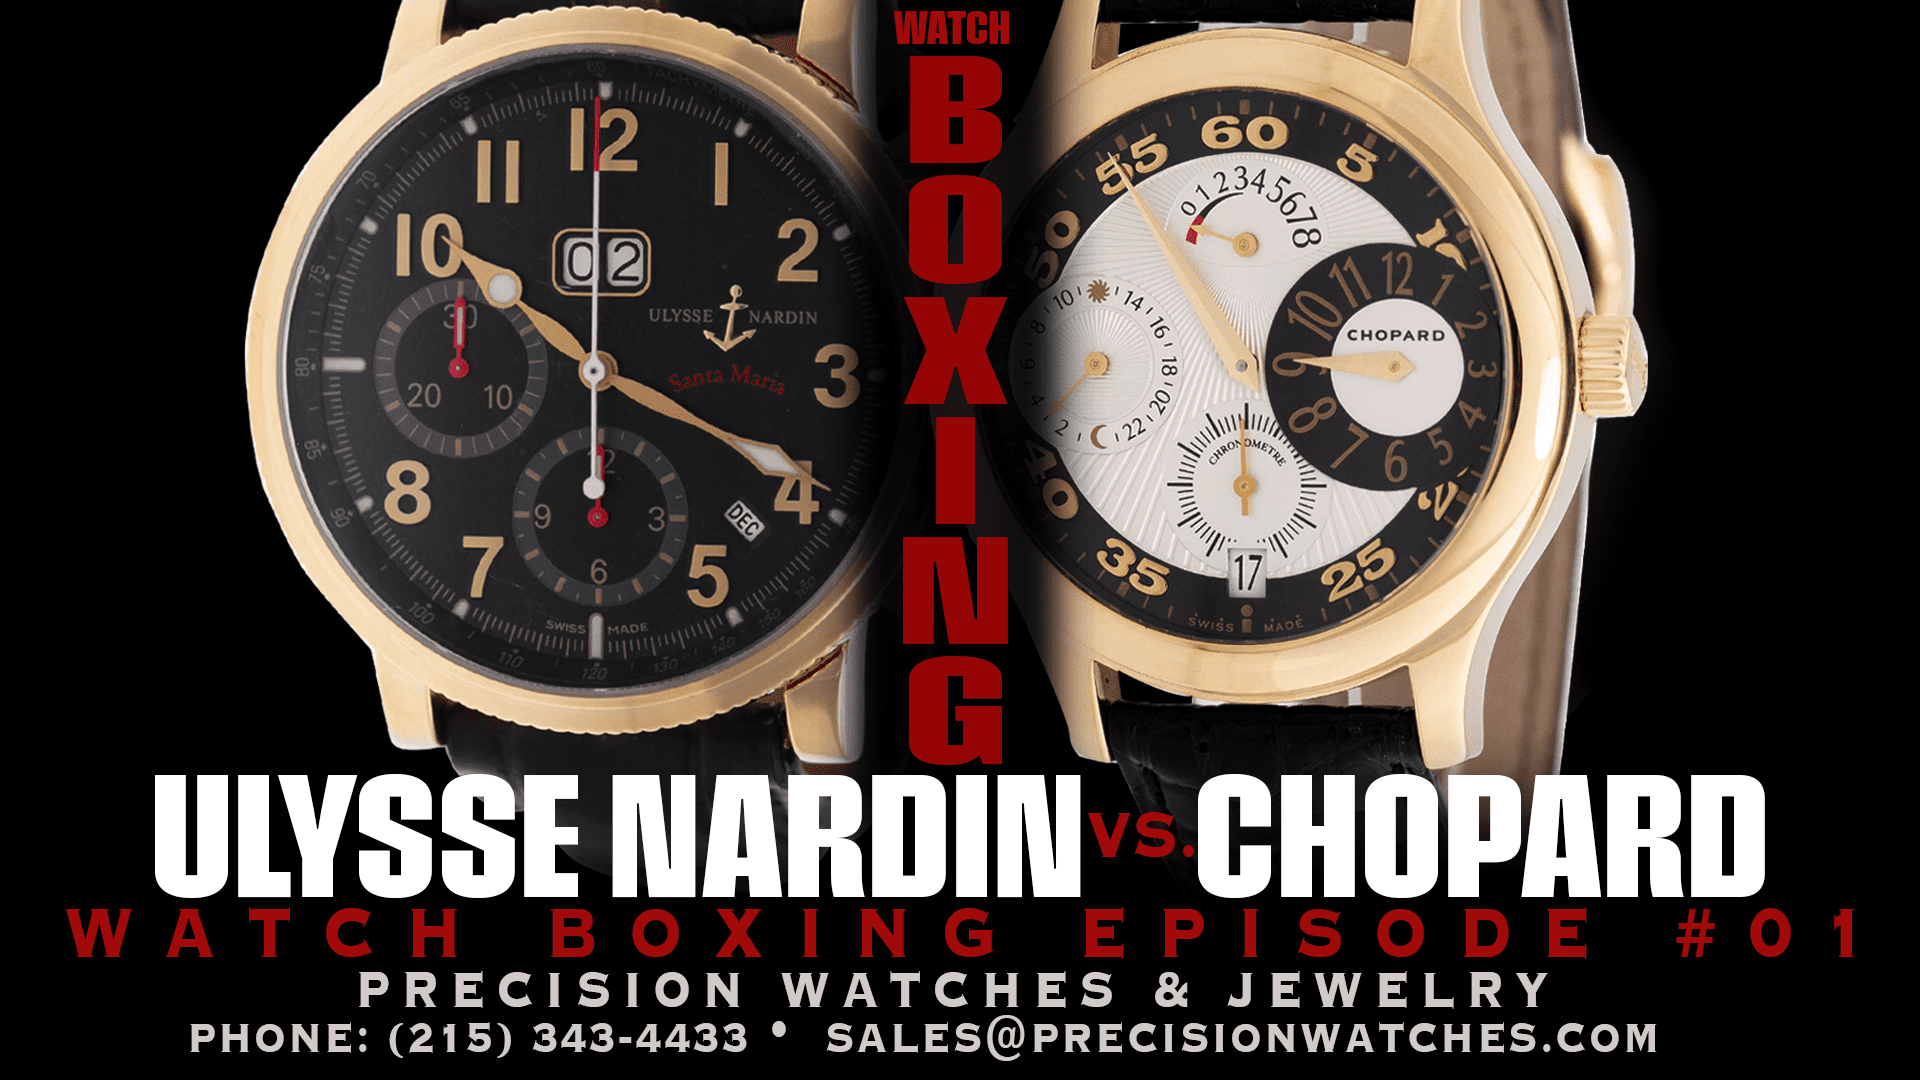 watchboxing episode 1 - ulysse nardin vs chopard